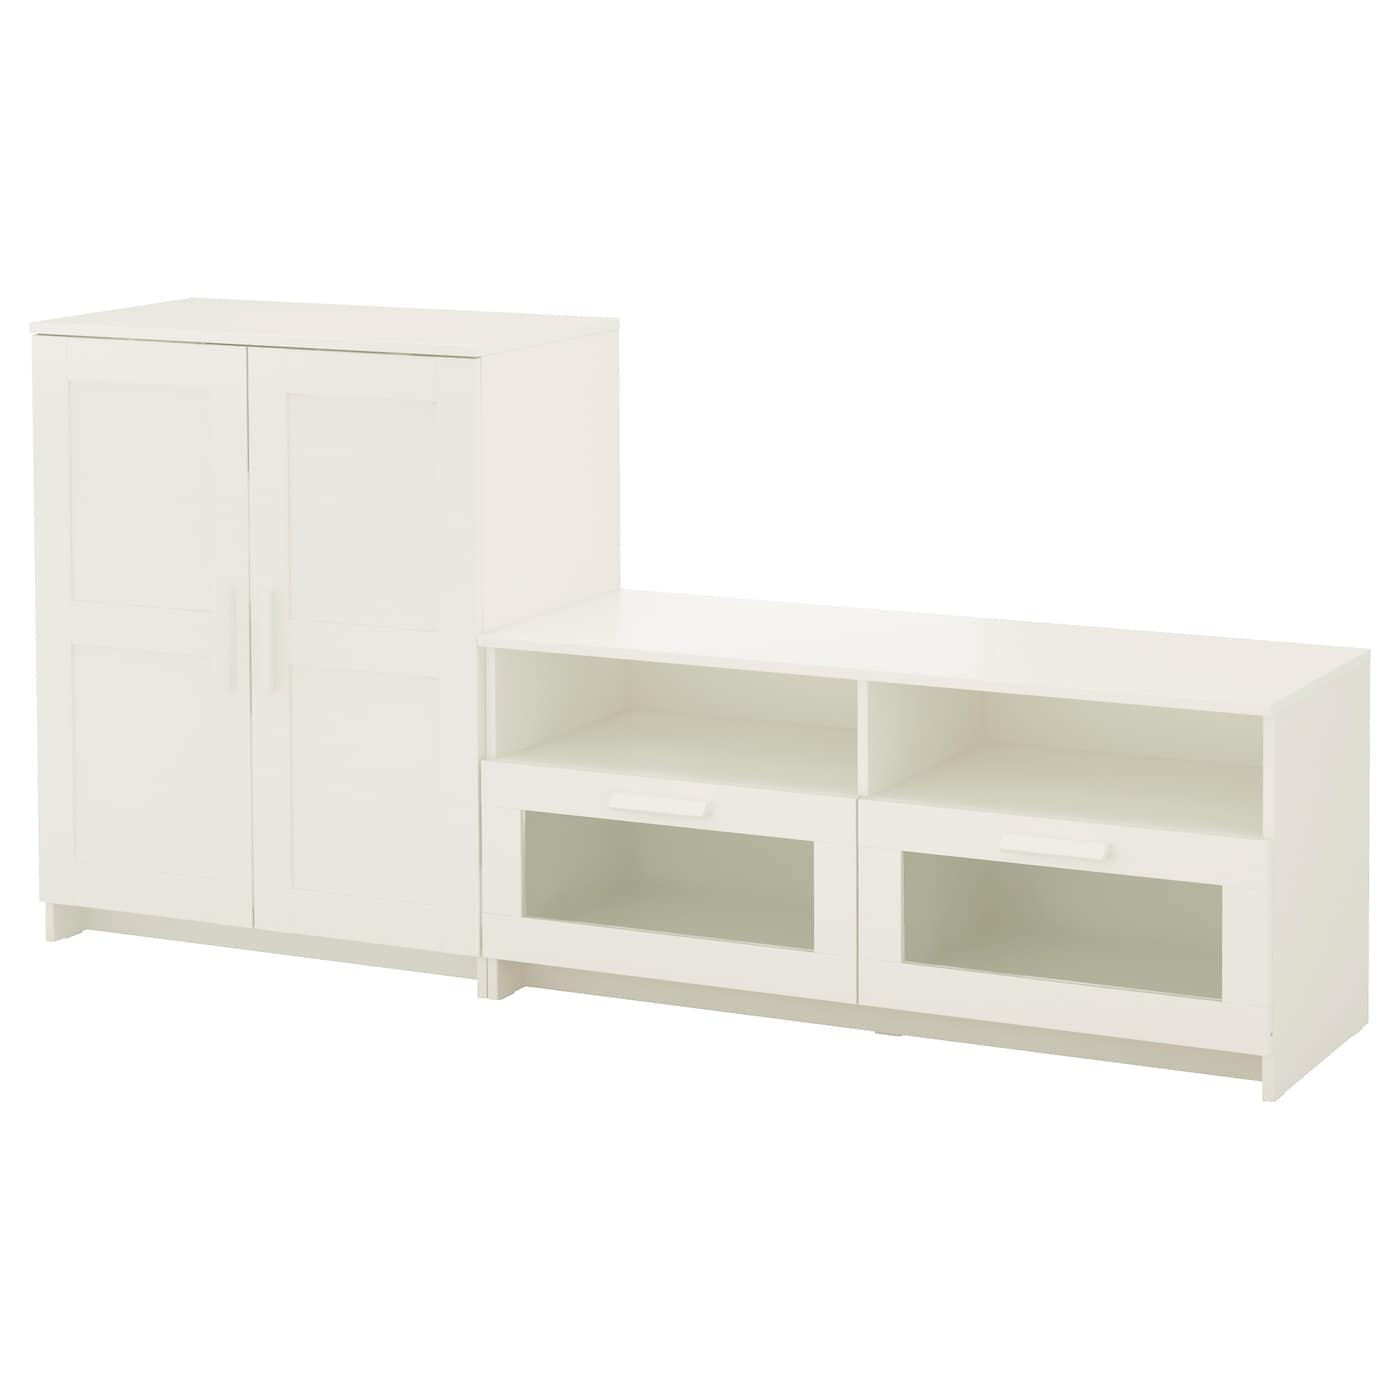 Tv storage unit tv wall units ikea - Meuble tele blanc ikea ...